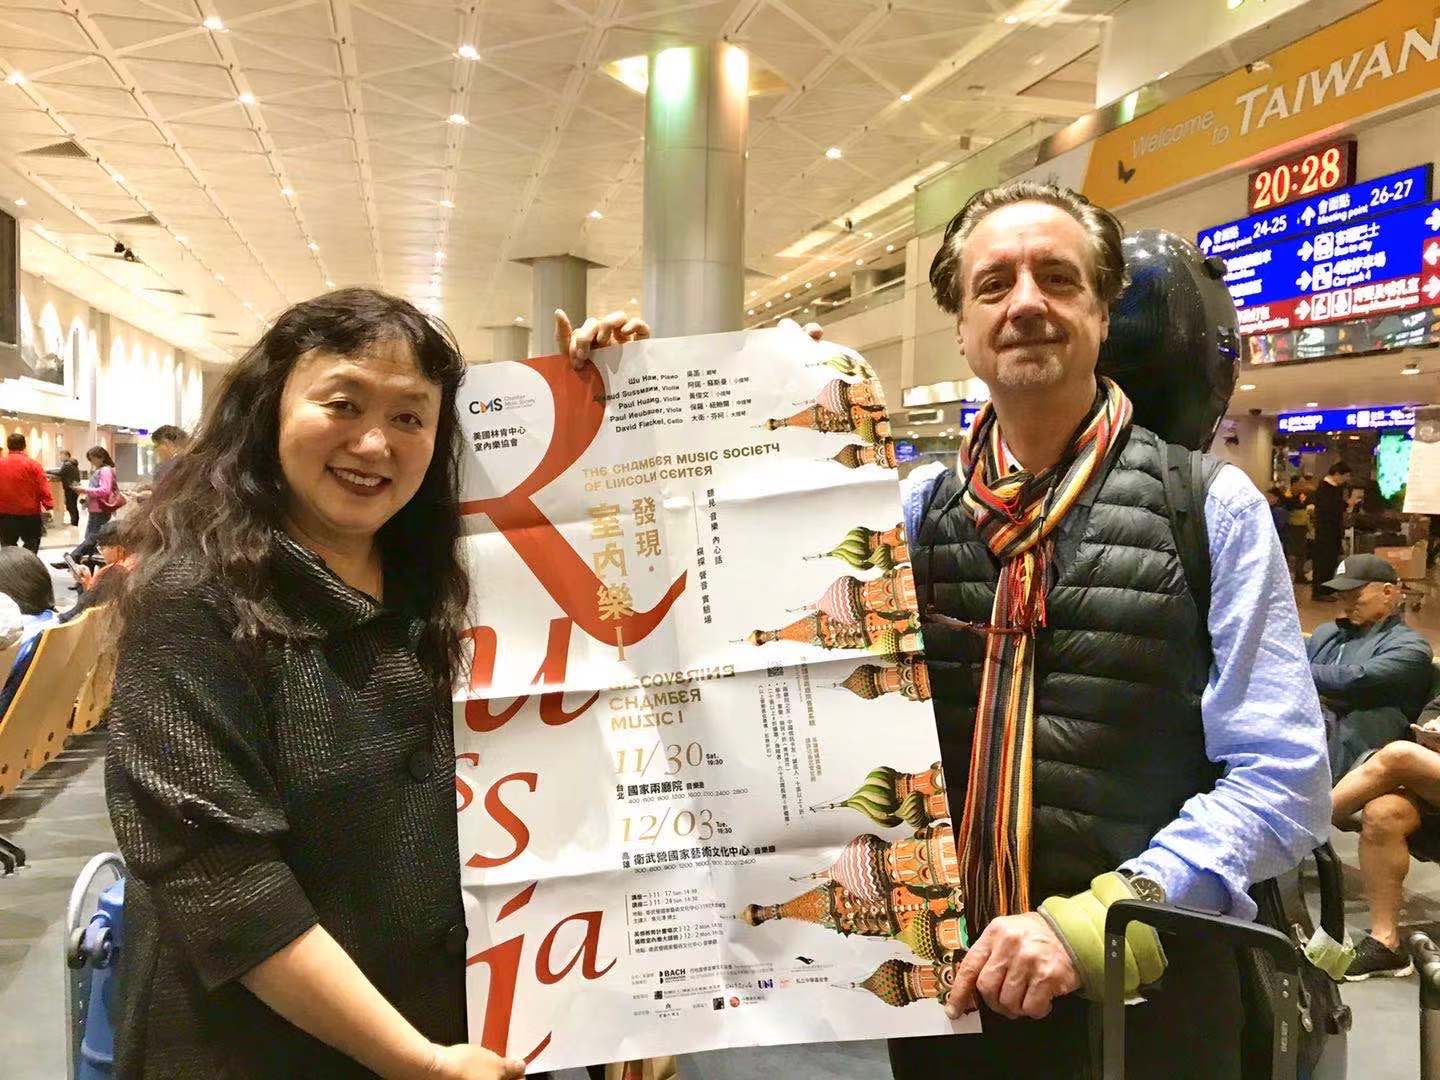 Co-Artistic Directors David Finckel and Wu Han with a CMS poster in Taipei.